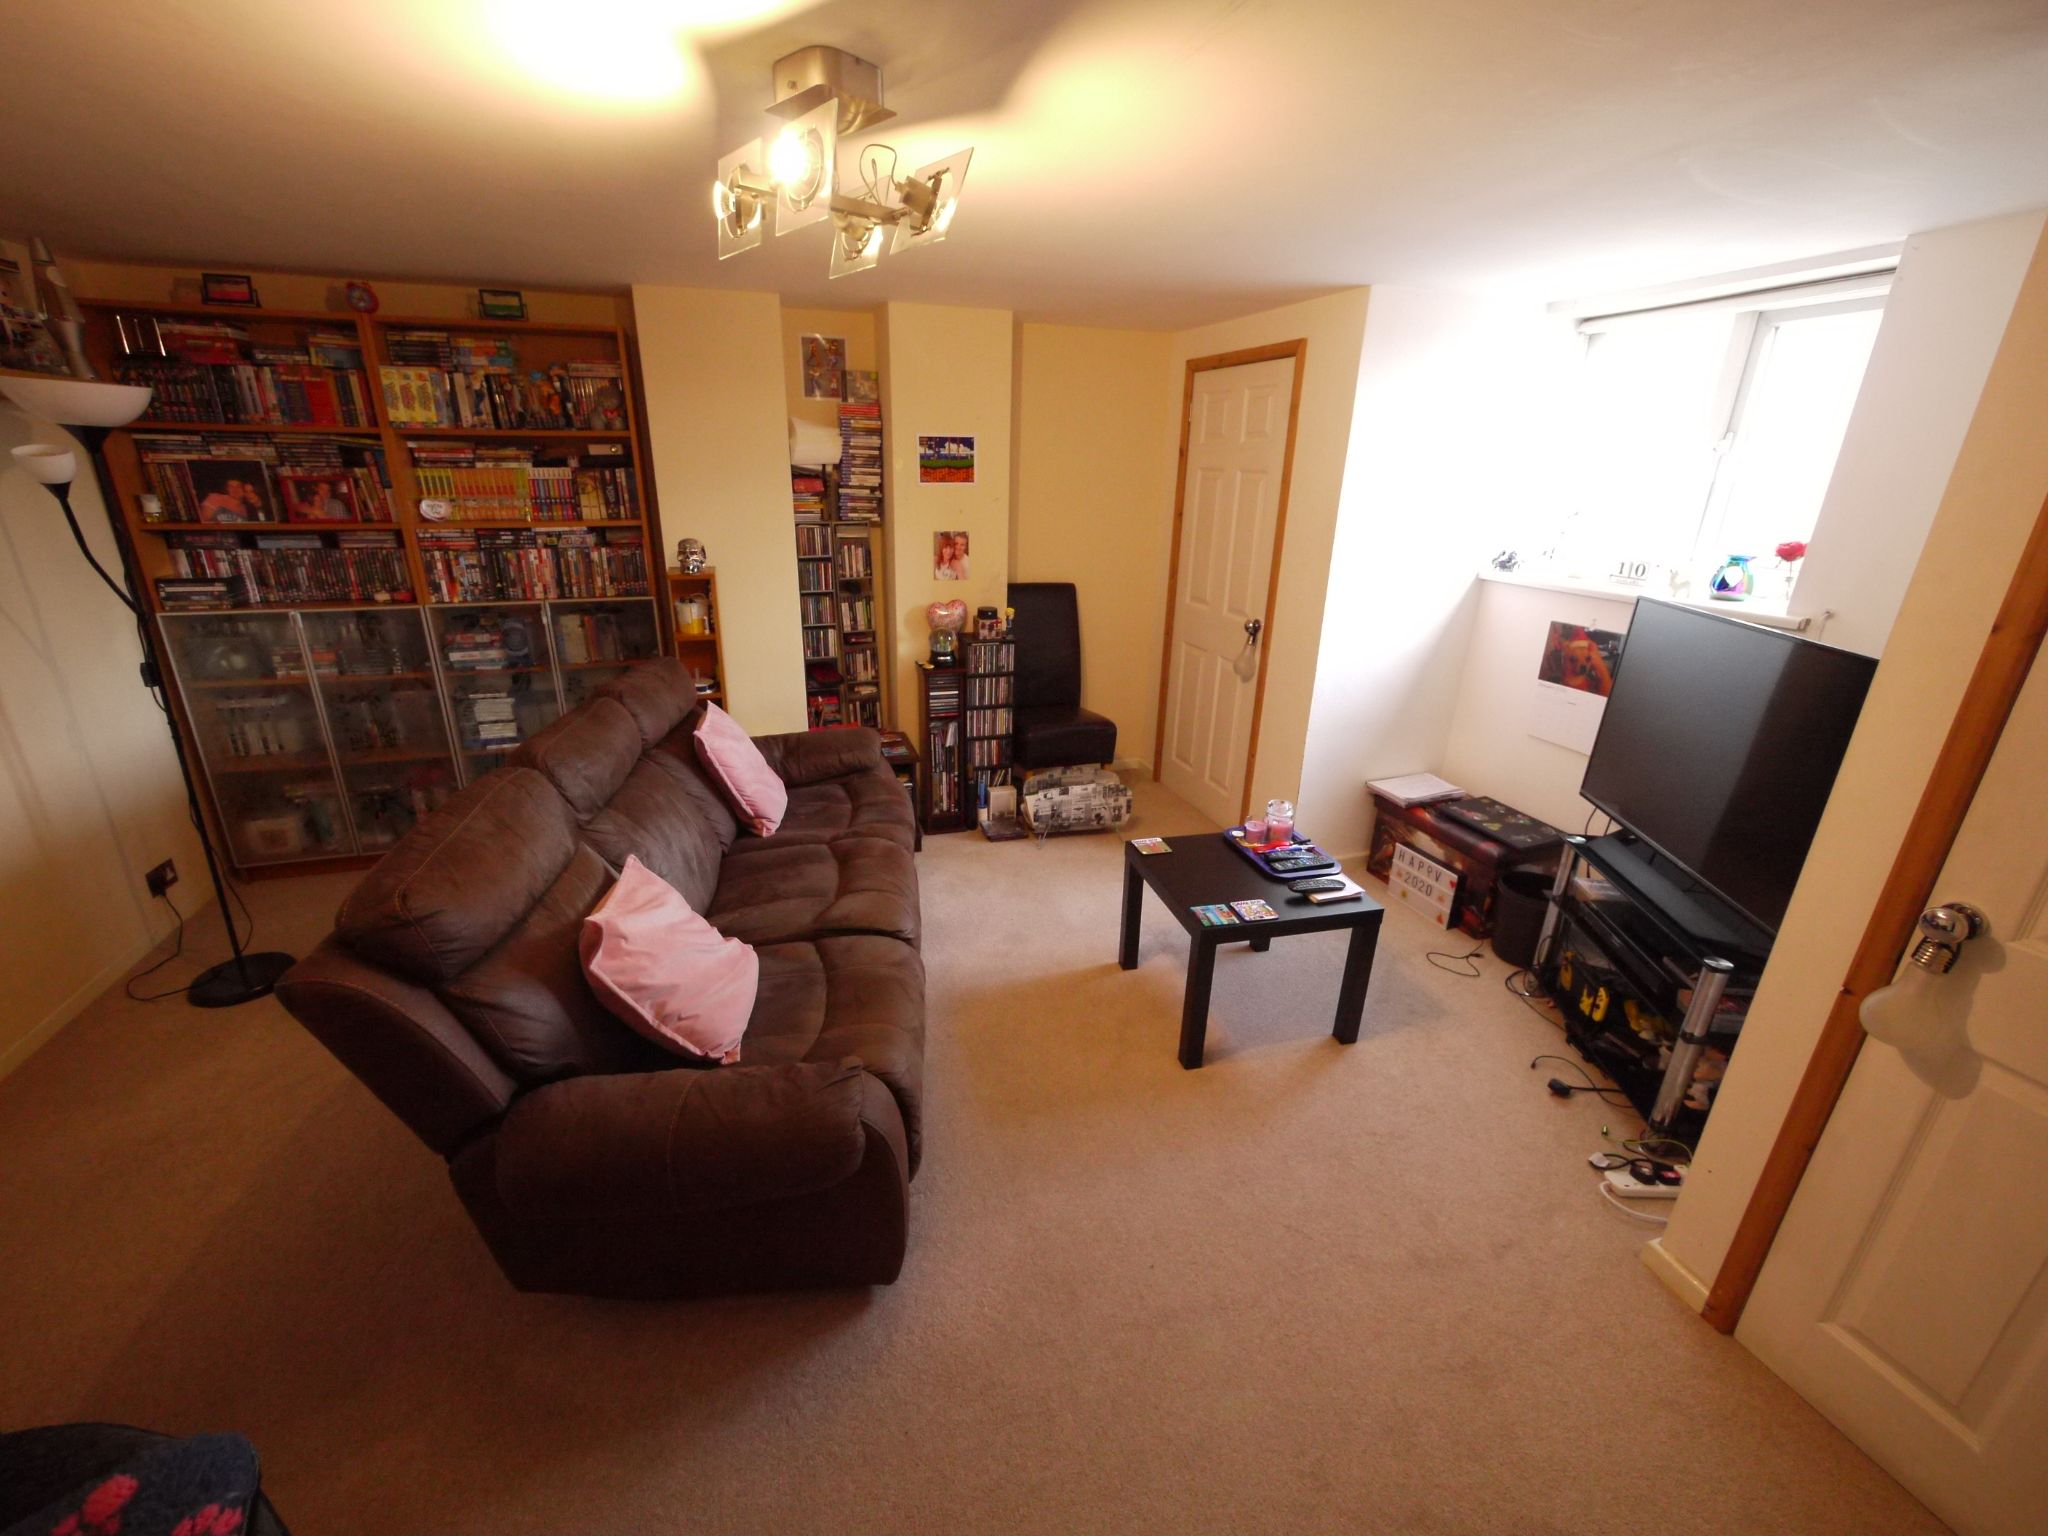 4 bedroom semi-detached house SSTC in Brighouse - Lower Gd Flr lounge.